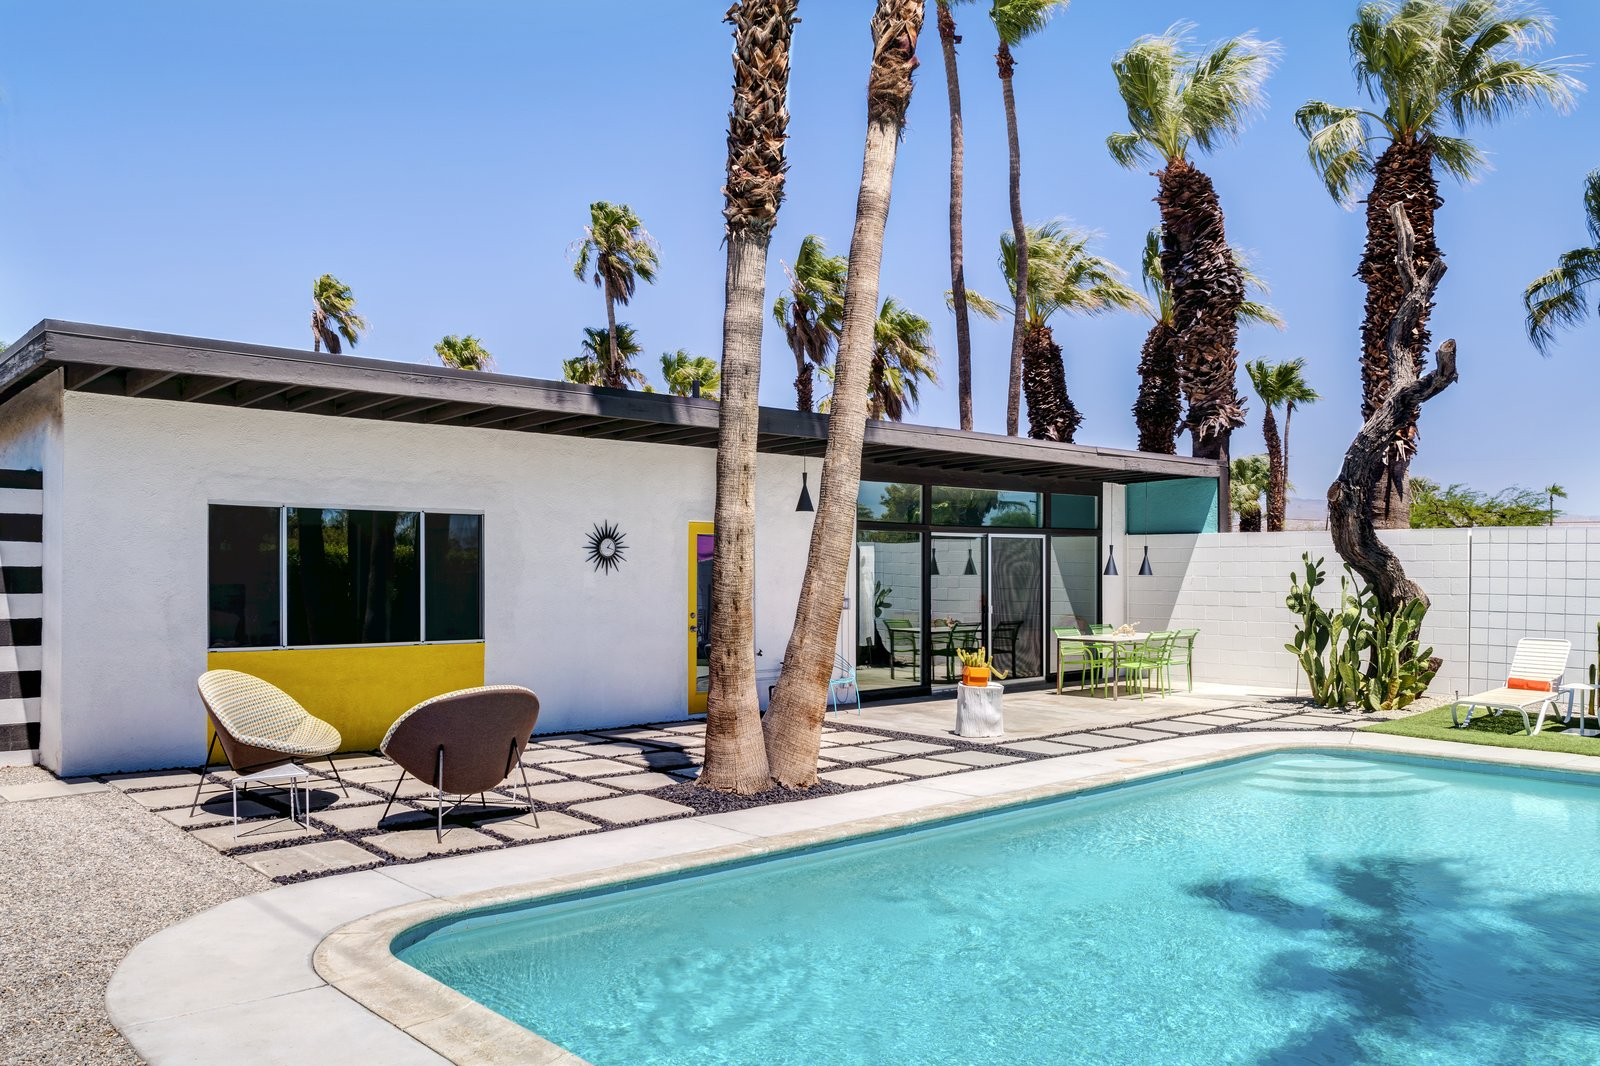 Photo 10 of 11 in A Donald Wexler-Designed Midcentury Home in Palm Springs Asks $599K